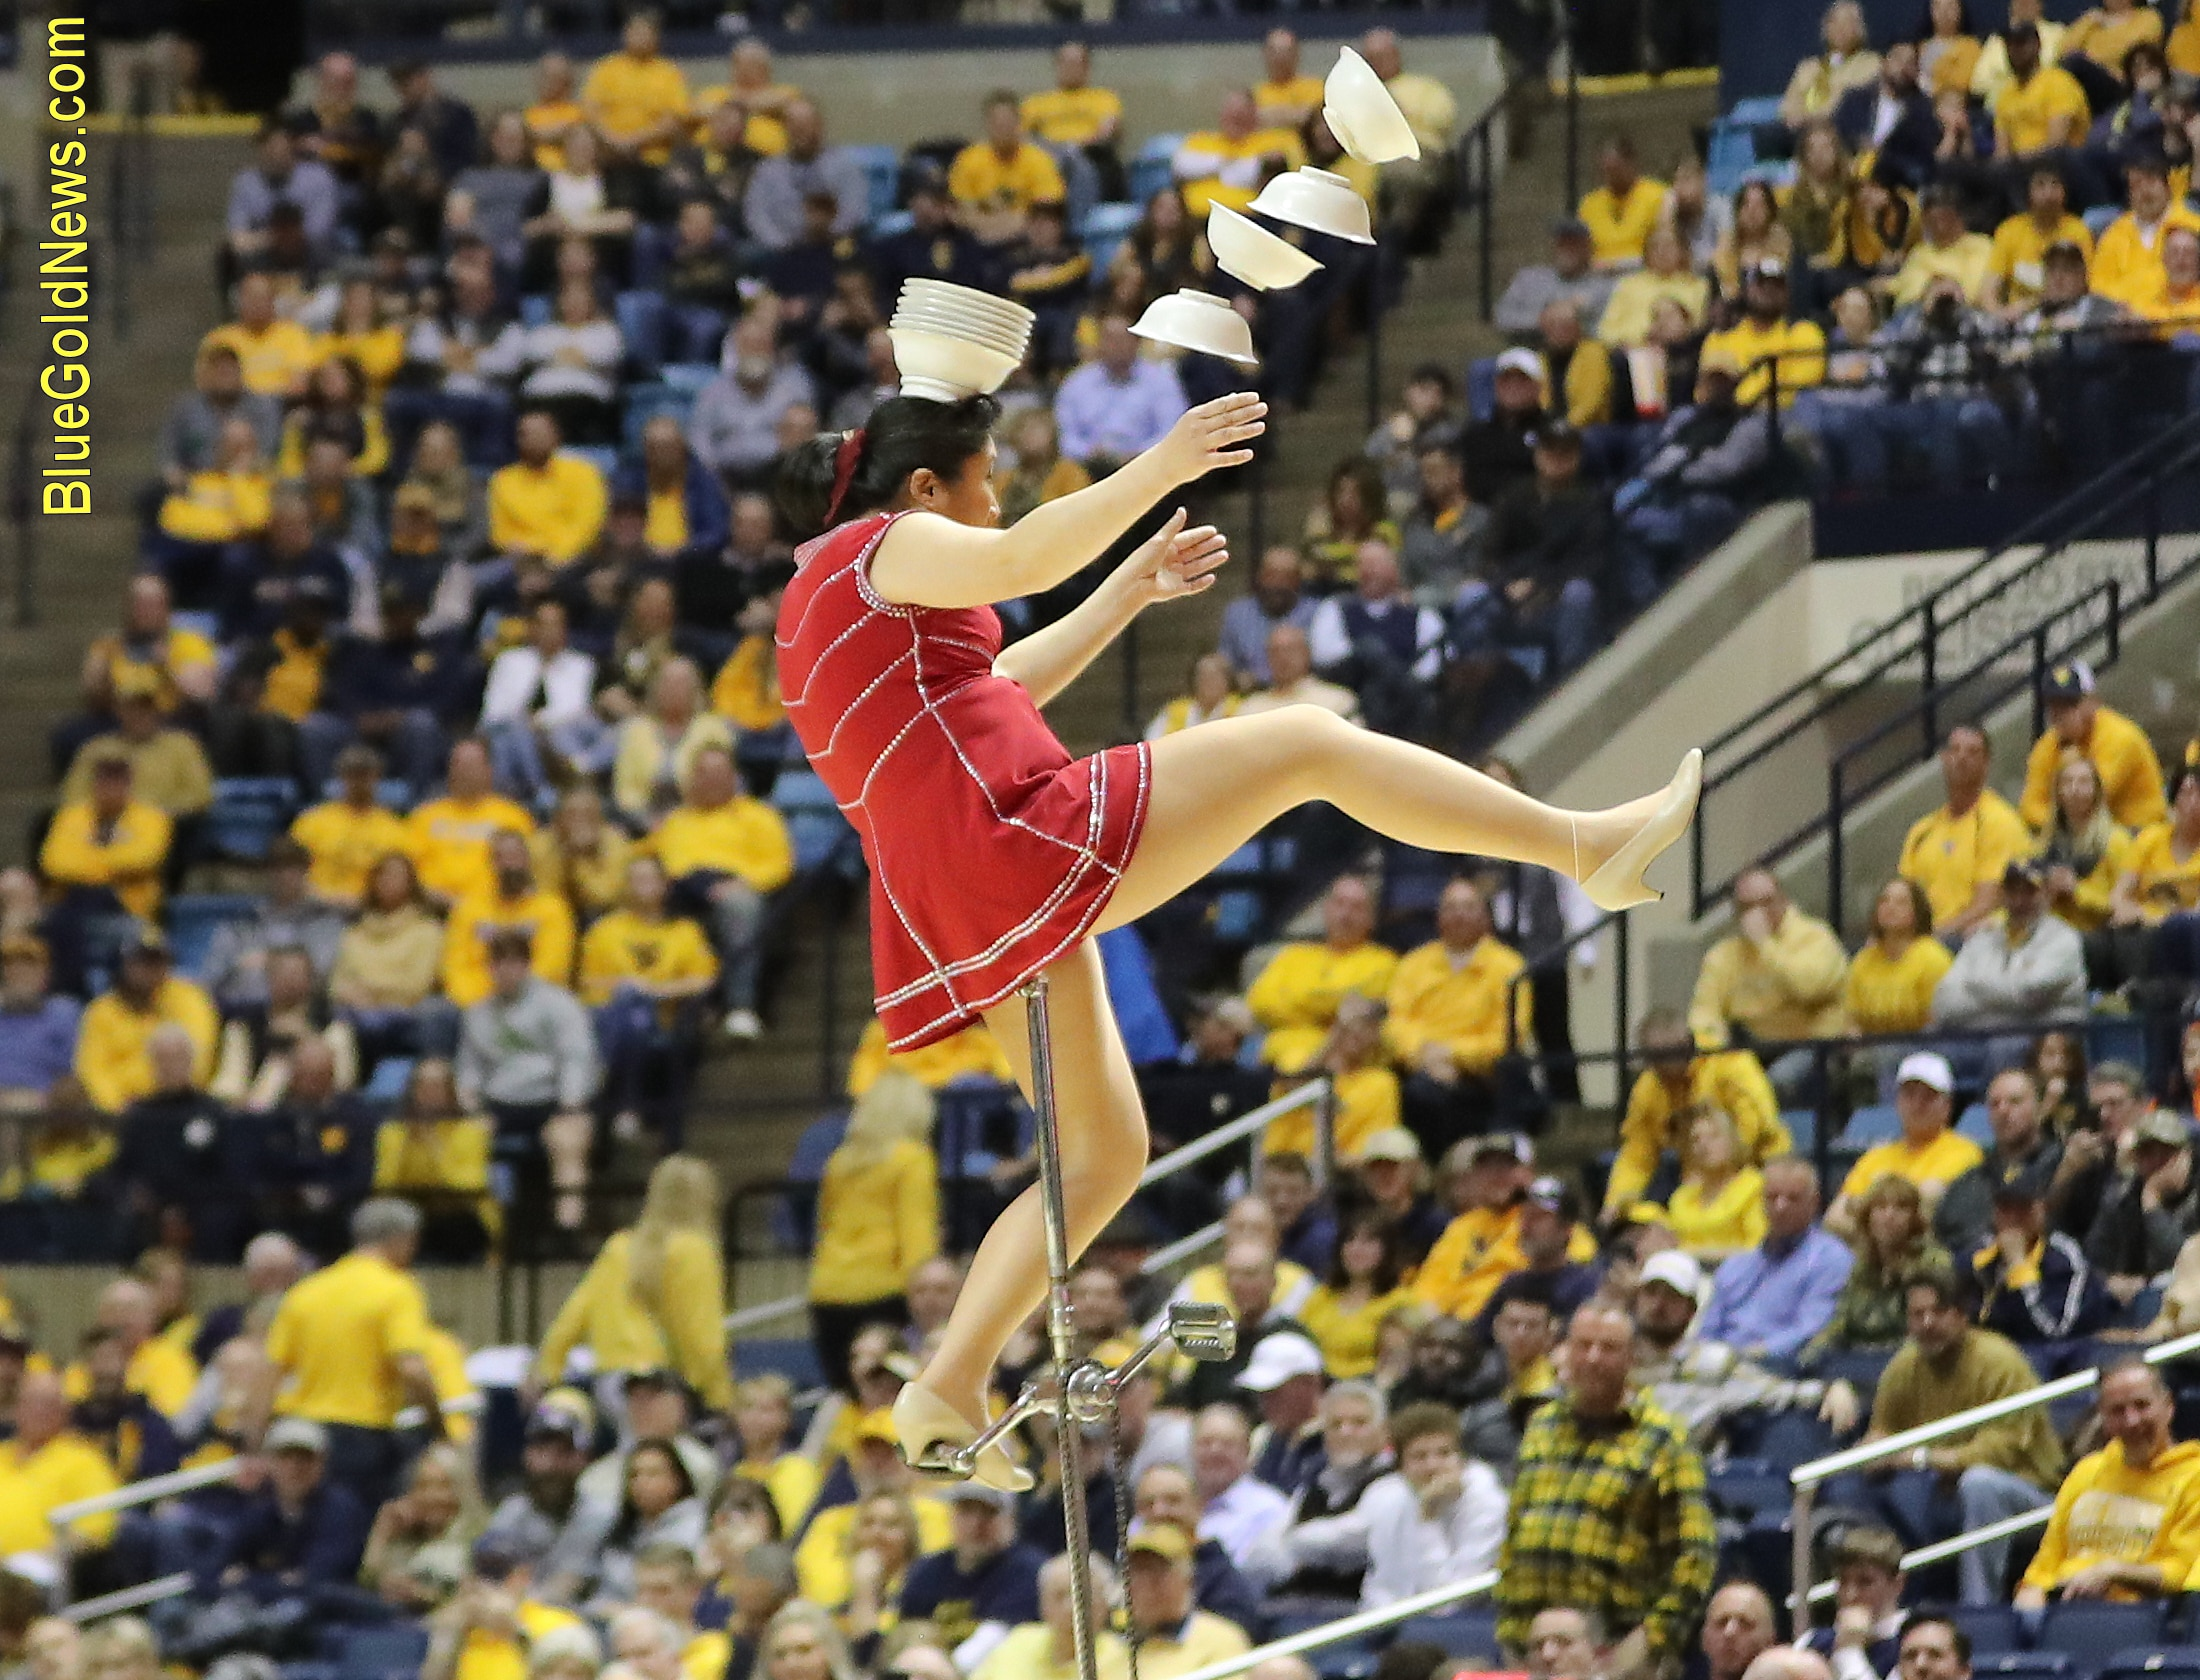 The Red Panda's 100% success rate dwarfed that of the Mountaineers' shooting percentage from the field